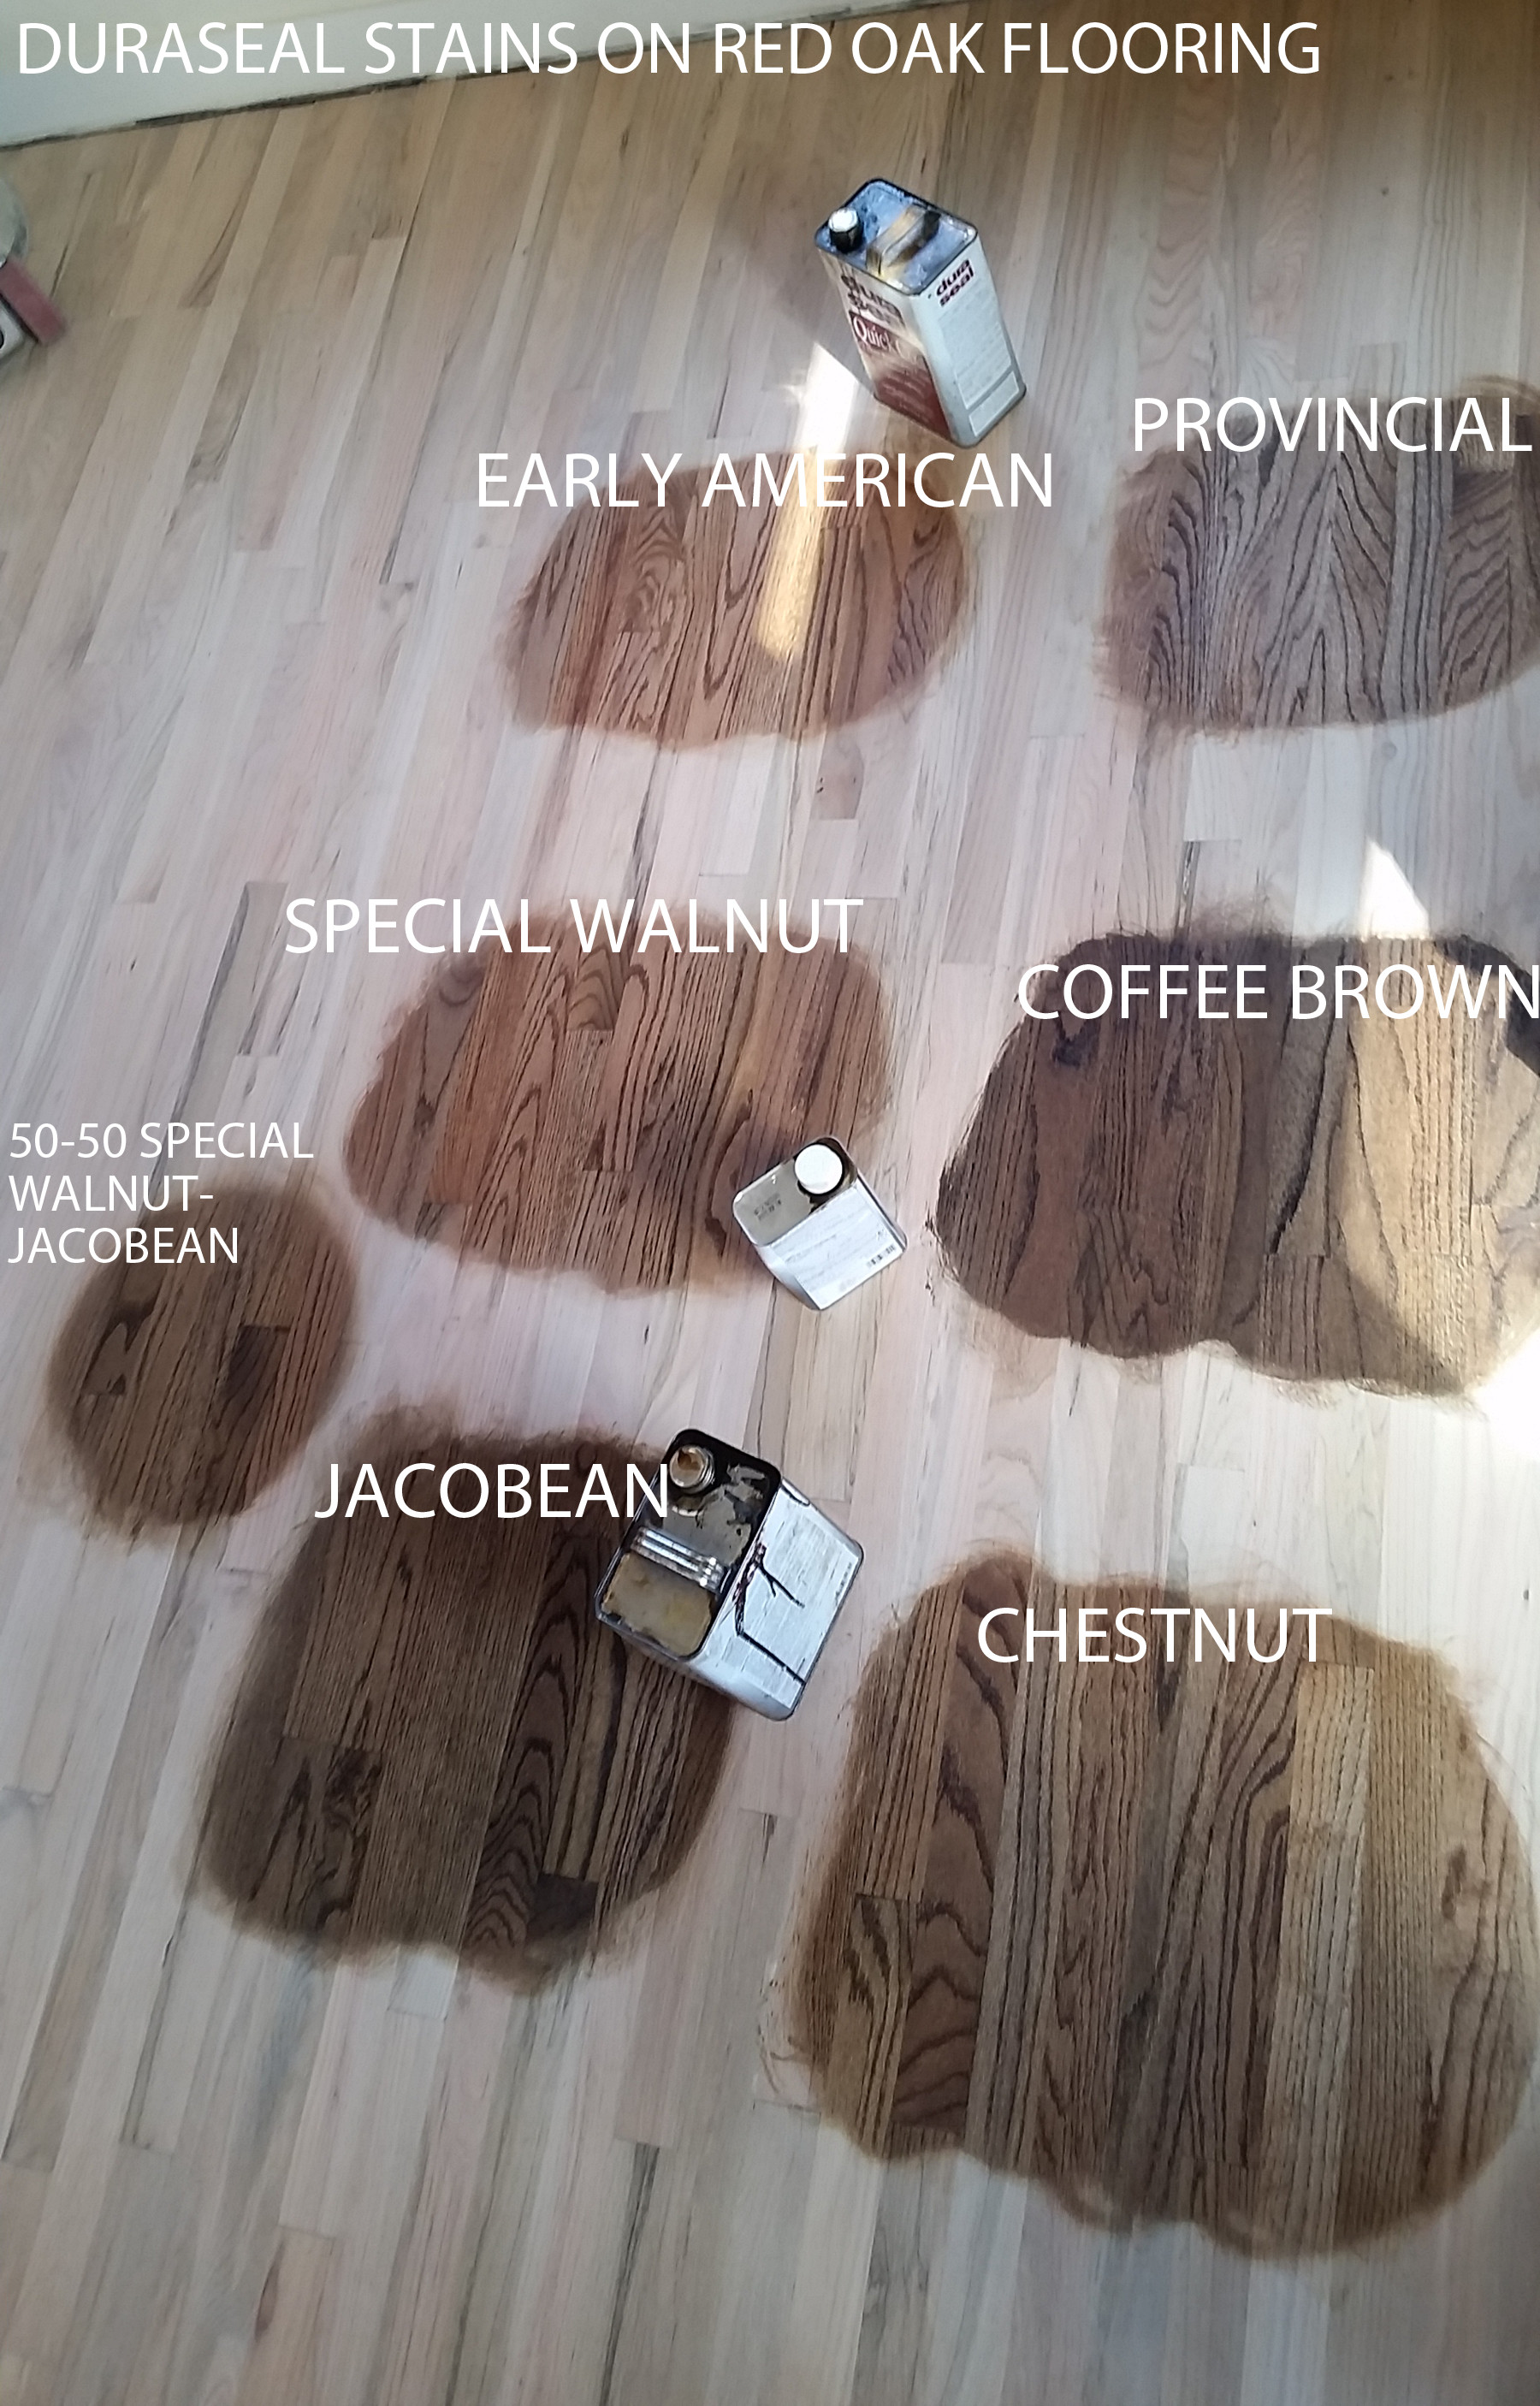 2 Red Oak Hardwood Flooring Of Duraseal Stain On Red Oak Wood Flooring Chestnut Jacobean Coffee within Duraseal Stain On Red Oak Wood Flooring Chestnut Jacobean Coffee Brown Special